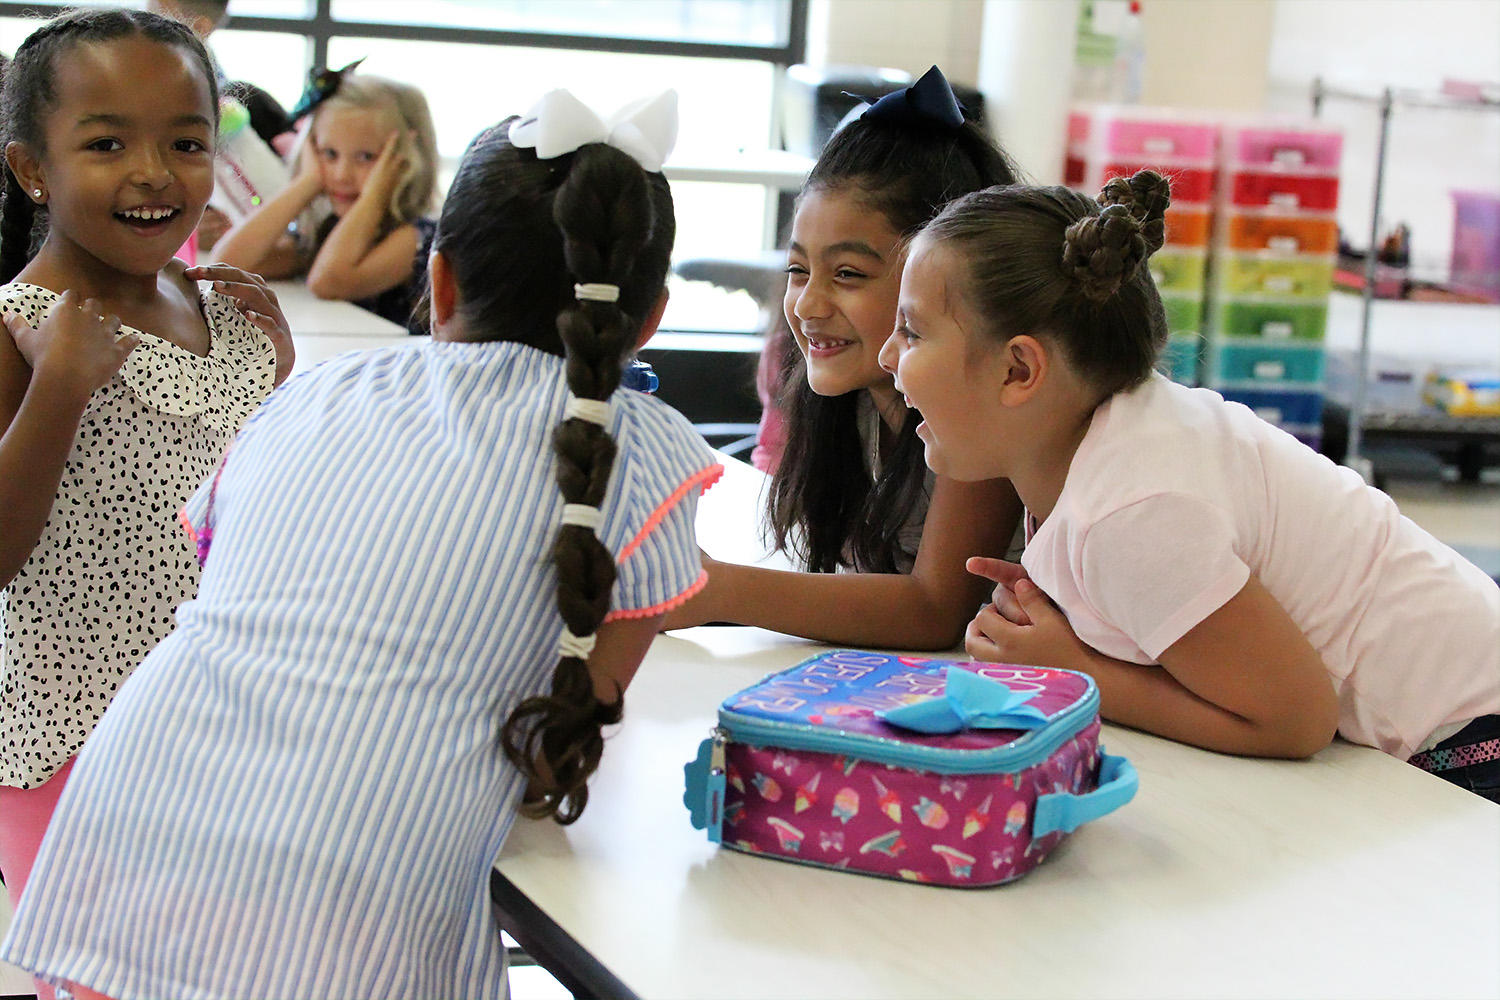 Elmwood students share a laugh during lunchtime in the Elmwood cafeteria.